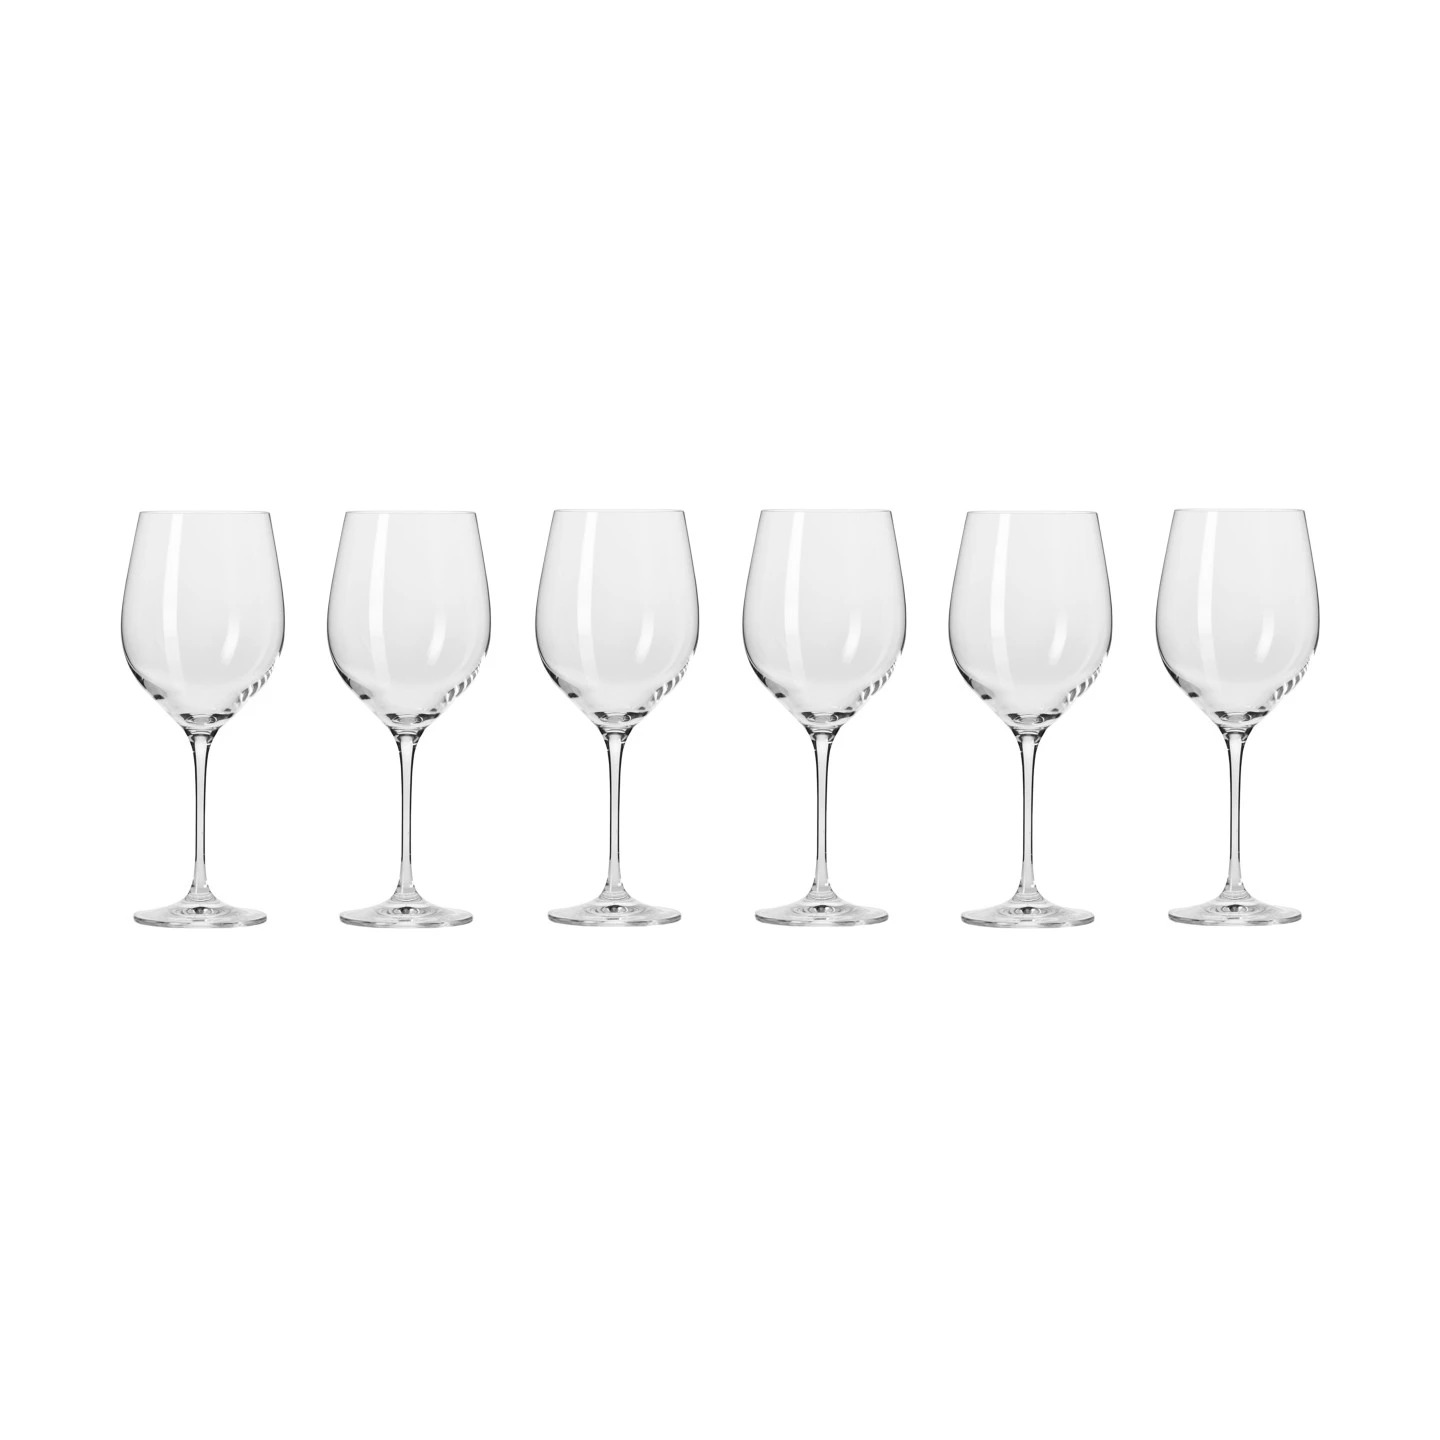 Harmony Red Wine Glasses 450ML Set of 6